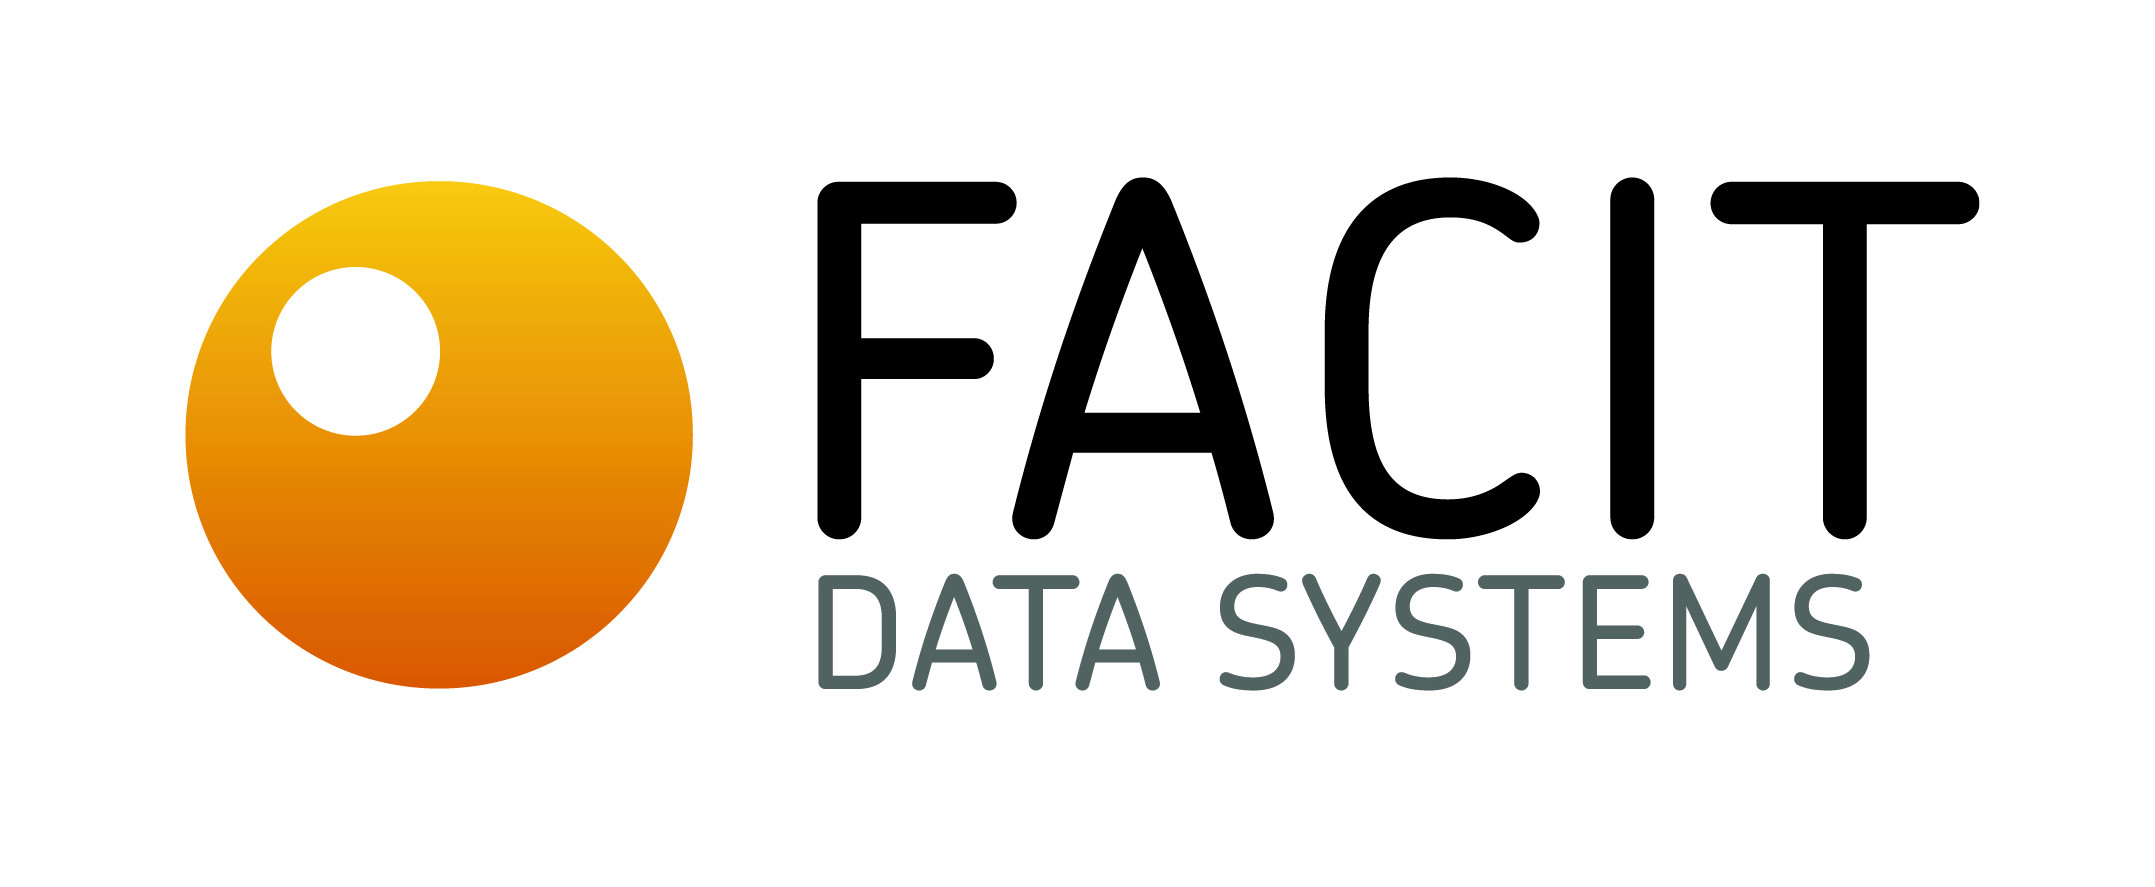 Facit-Data-Systems-Logo